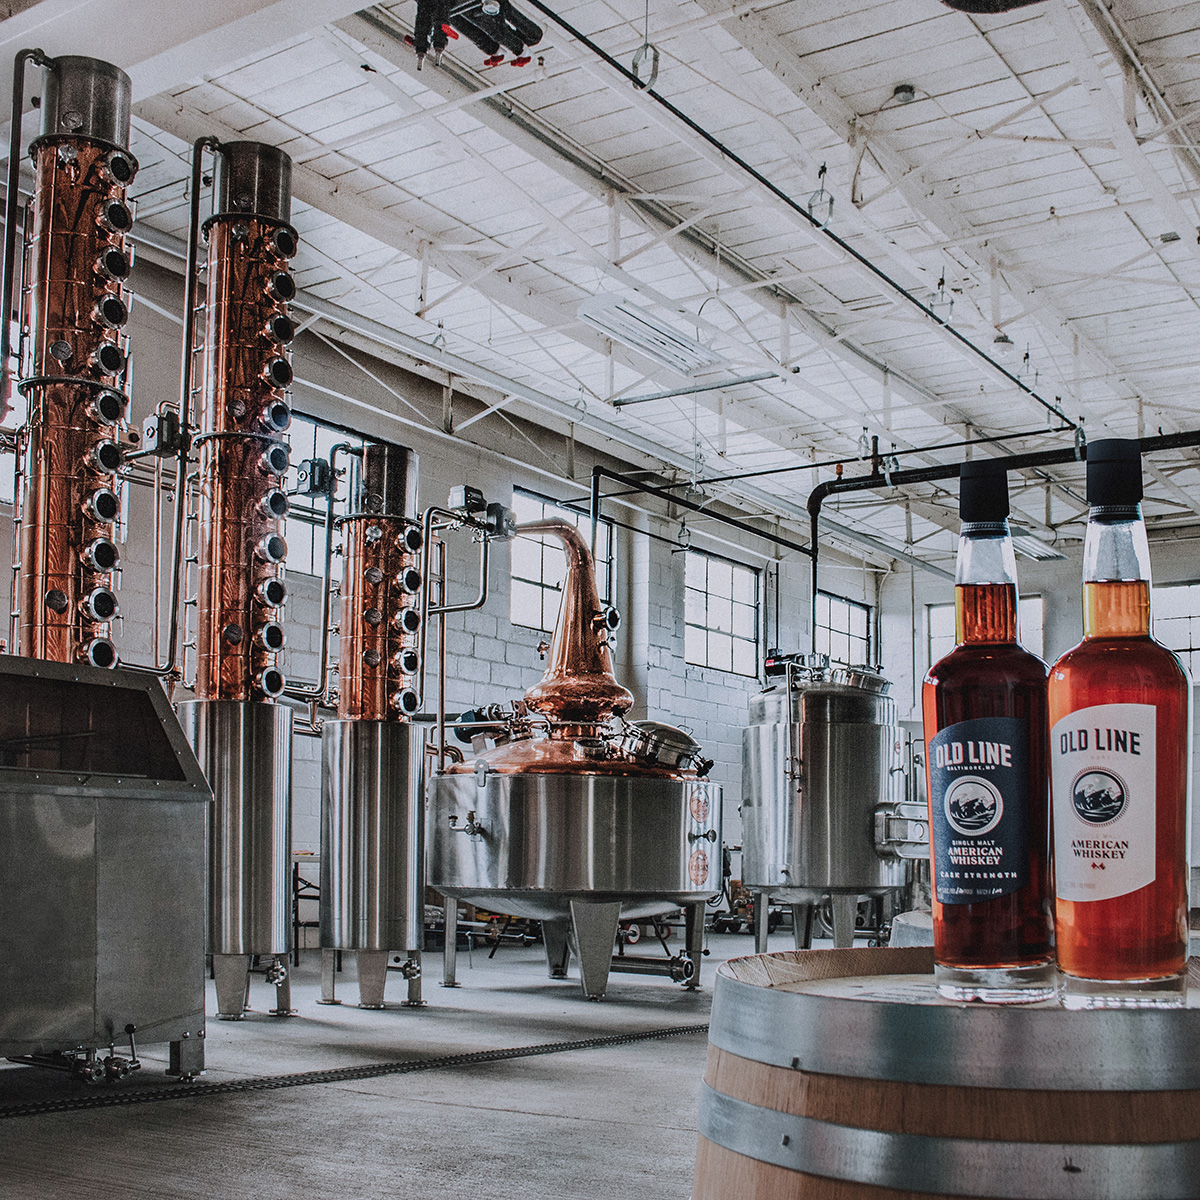 Old Line Distillery Baltimore Md Whiskey and Rum